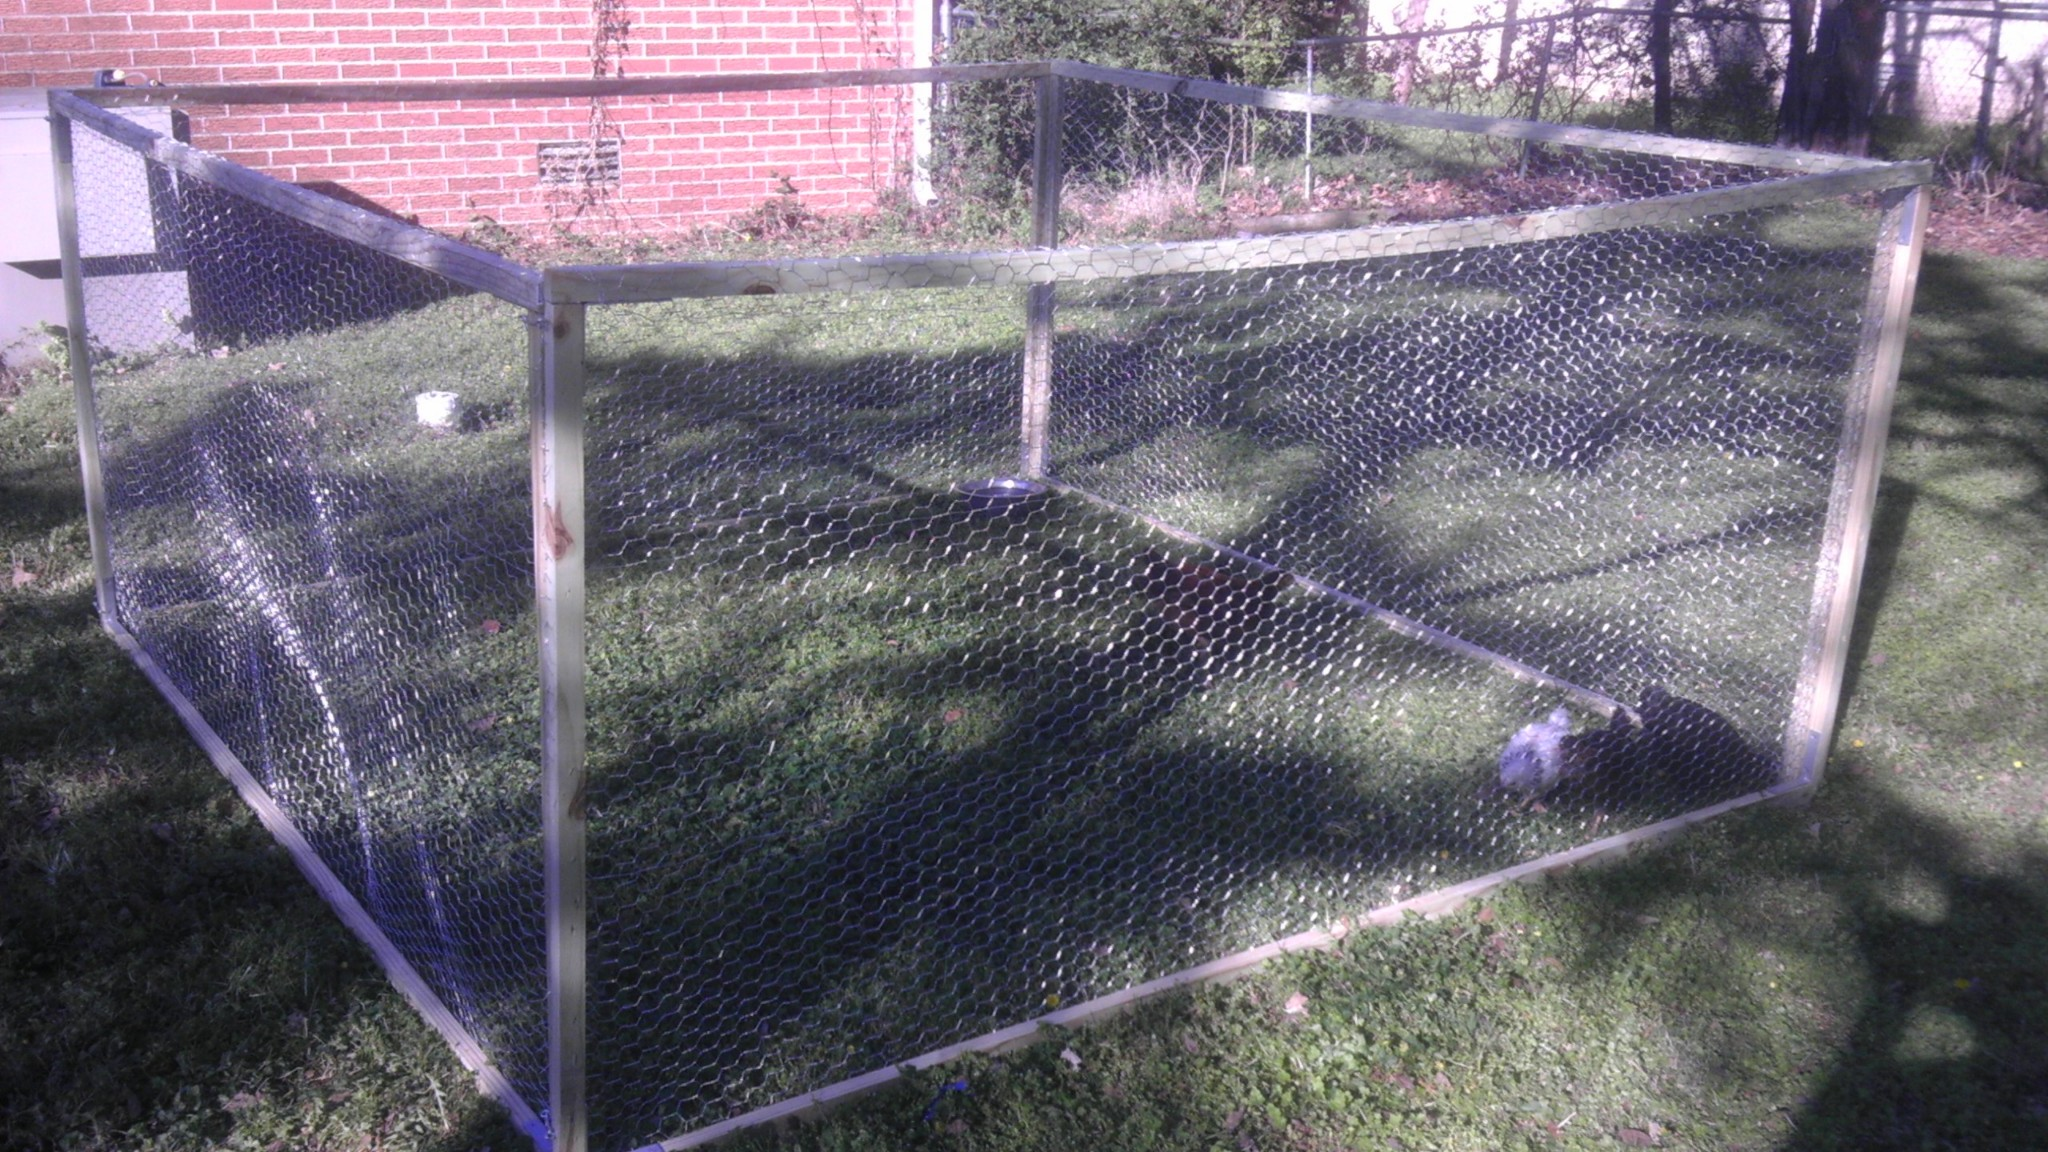 Photo: The chickens in their back yard run